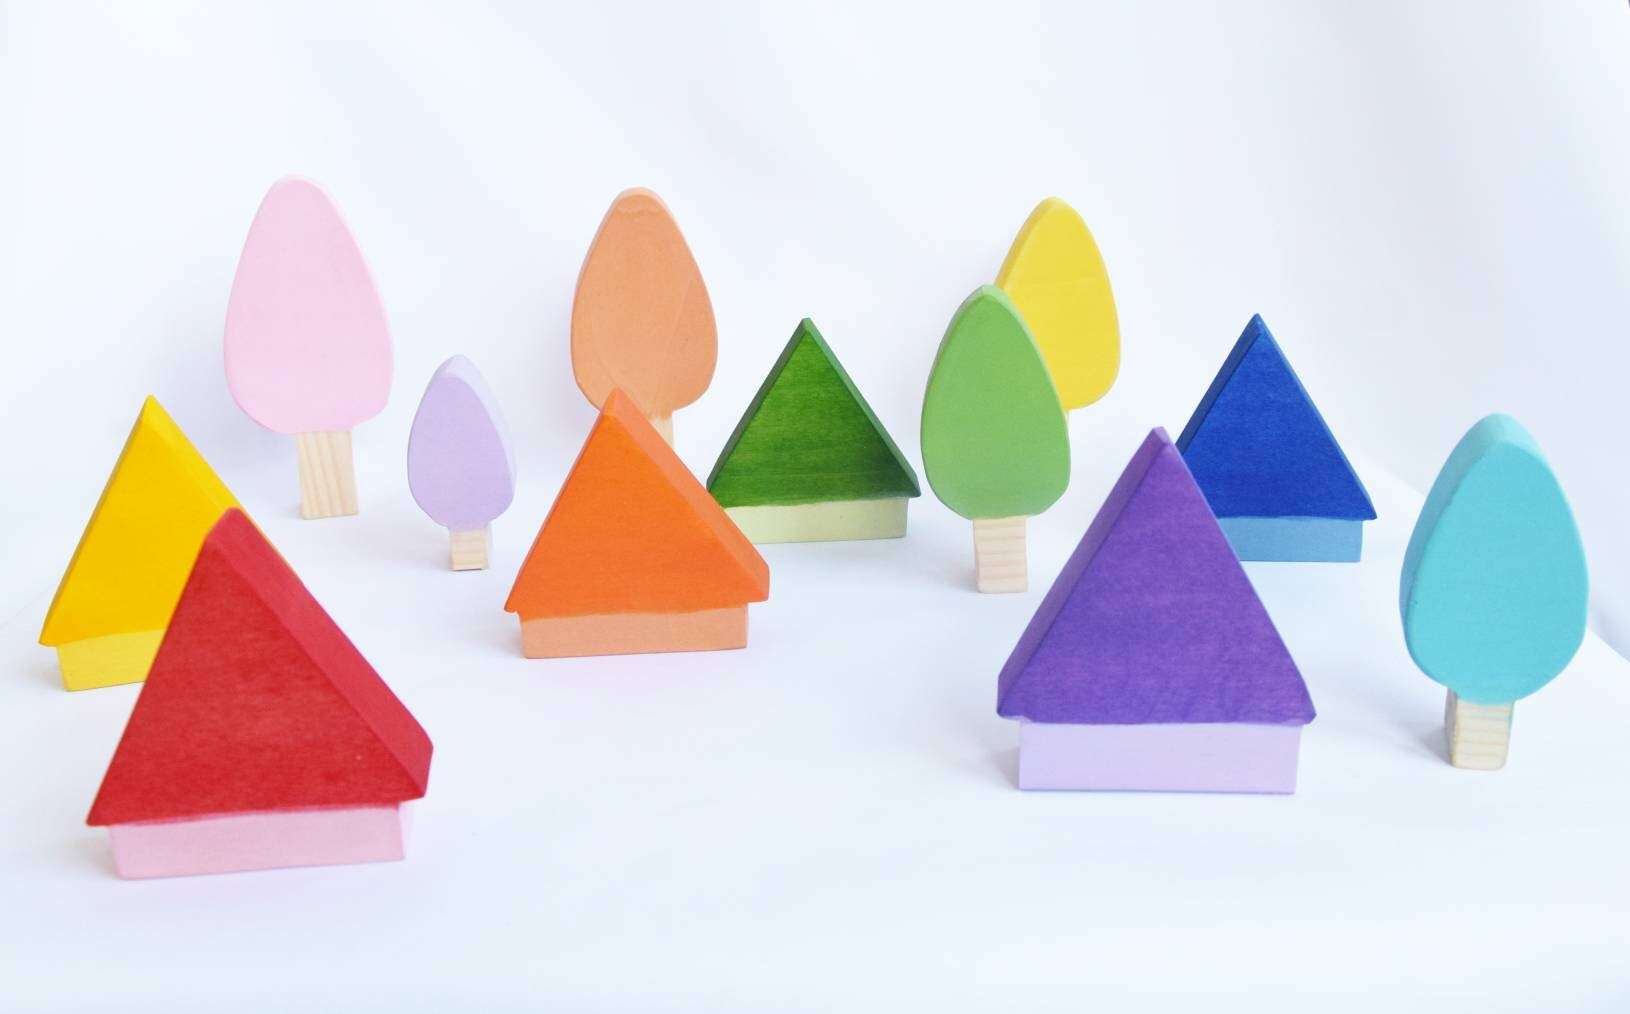 pastel trees and houses, wood toy, wooden trees toy, loose parts, waldorf toy, rainbow toy set, rainbow decoration, mushrooms, gift for kid